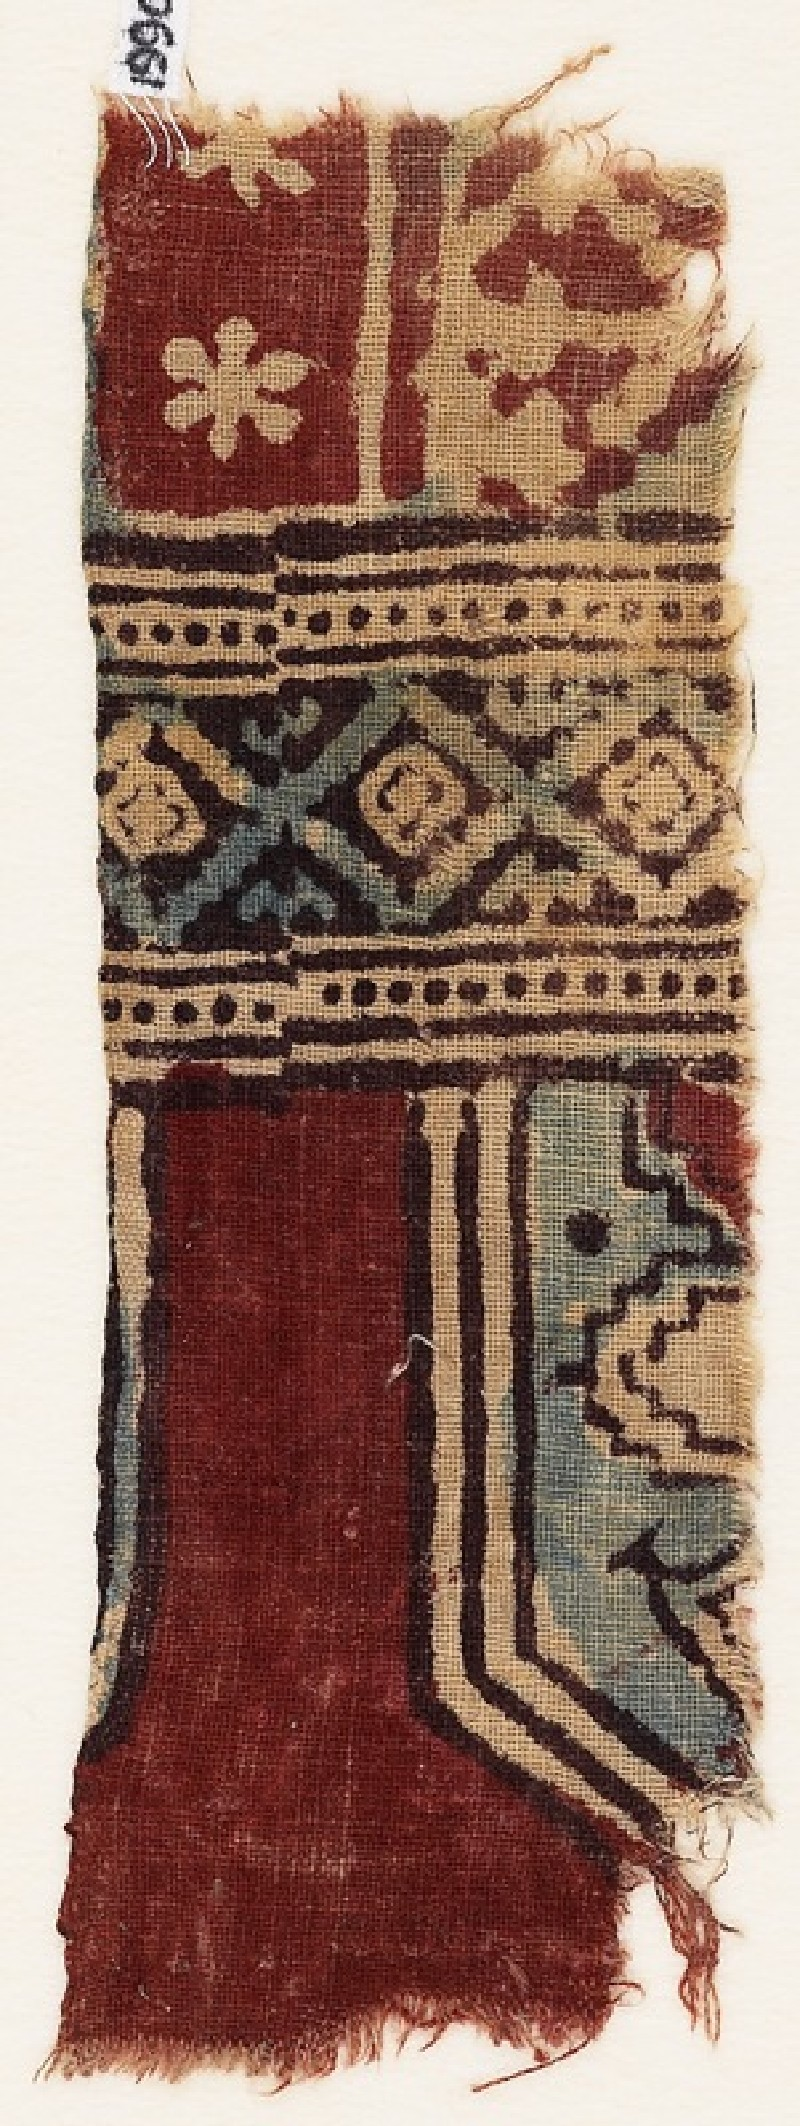 Textile fragment with part of a tab, cartouche, and plant